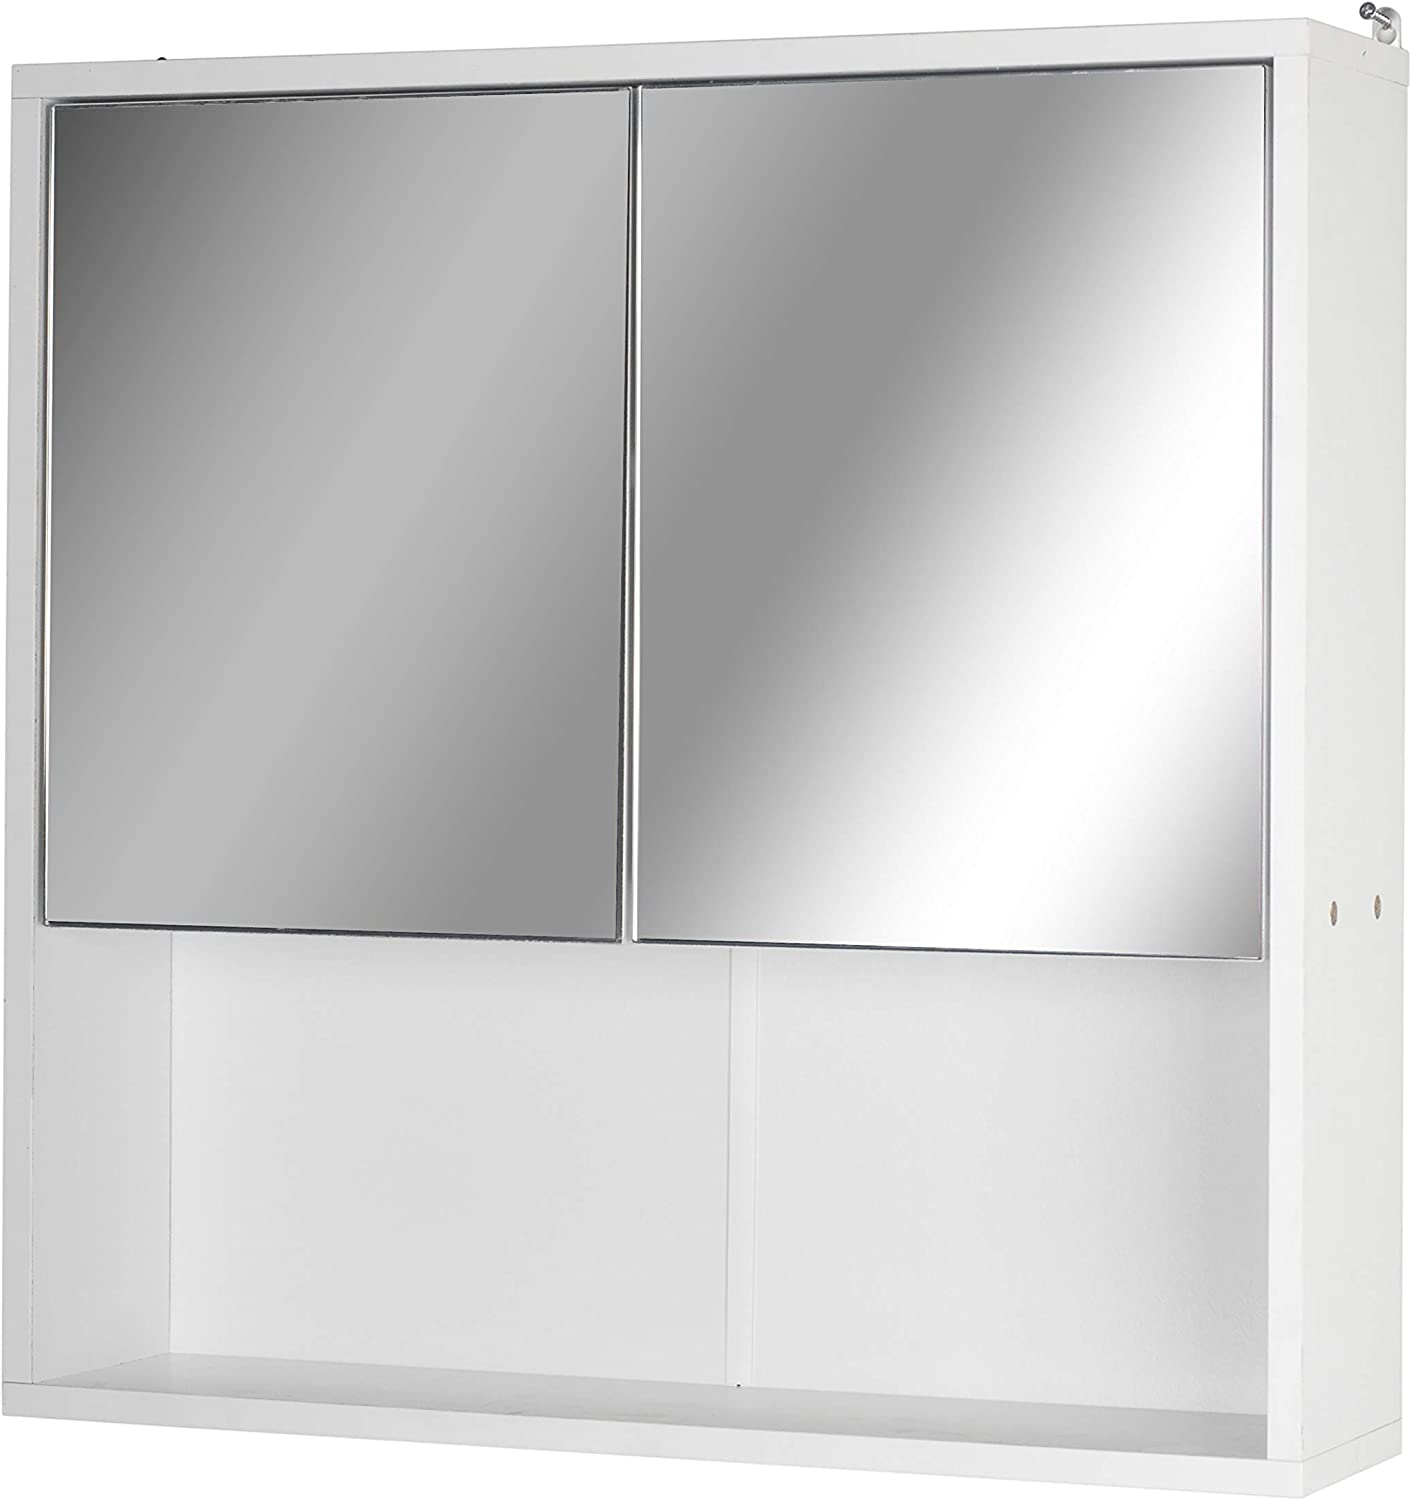 Urbn-Living White Wooden Wall Mounted Mirror Door Bathroom Cabinet (2 Half Doors)